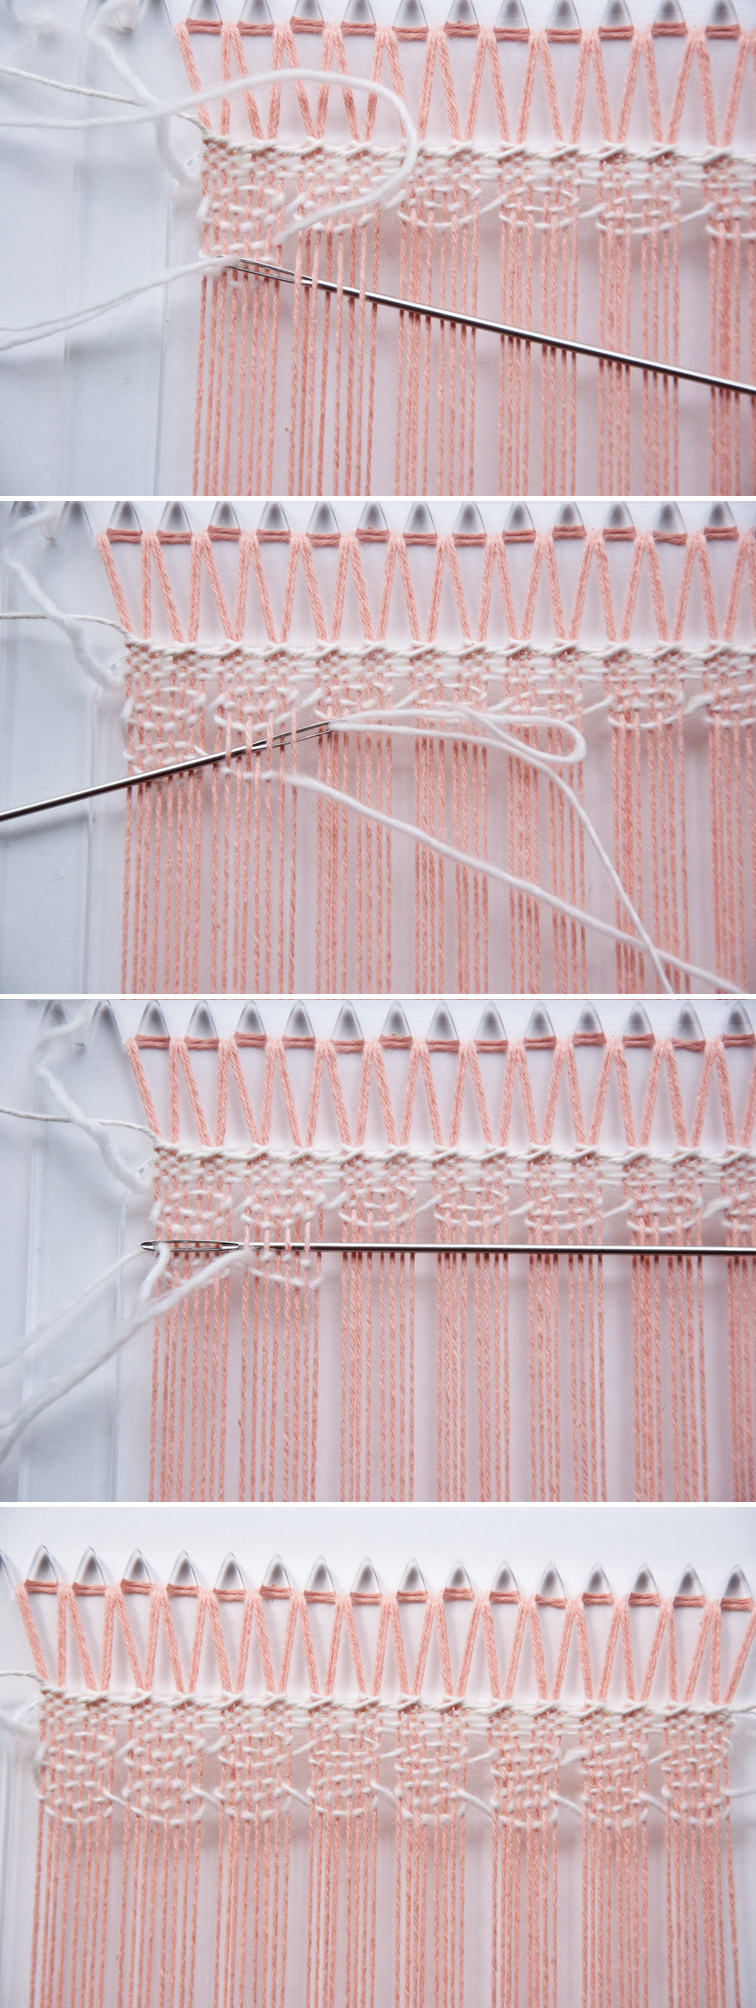 Weave Along || Part 2: Spanish Lace Weave